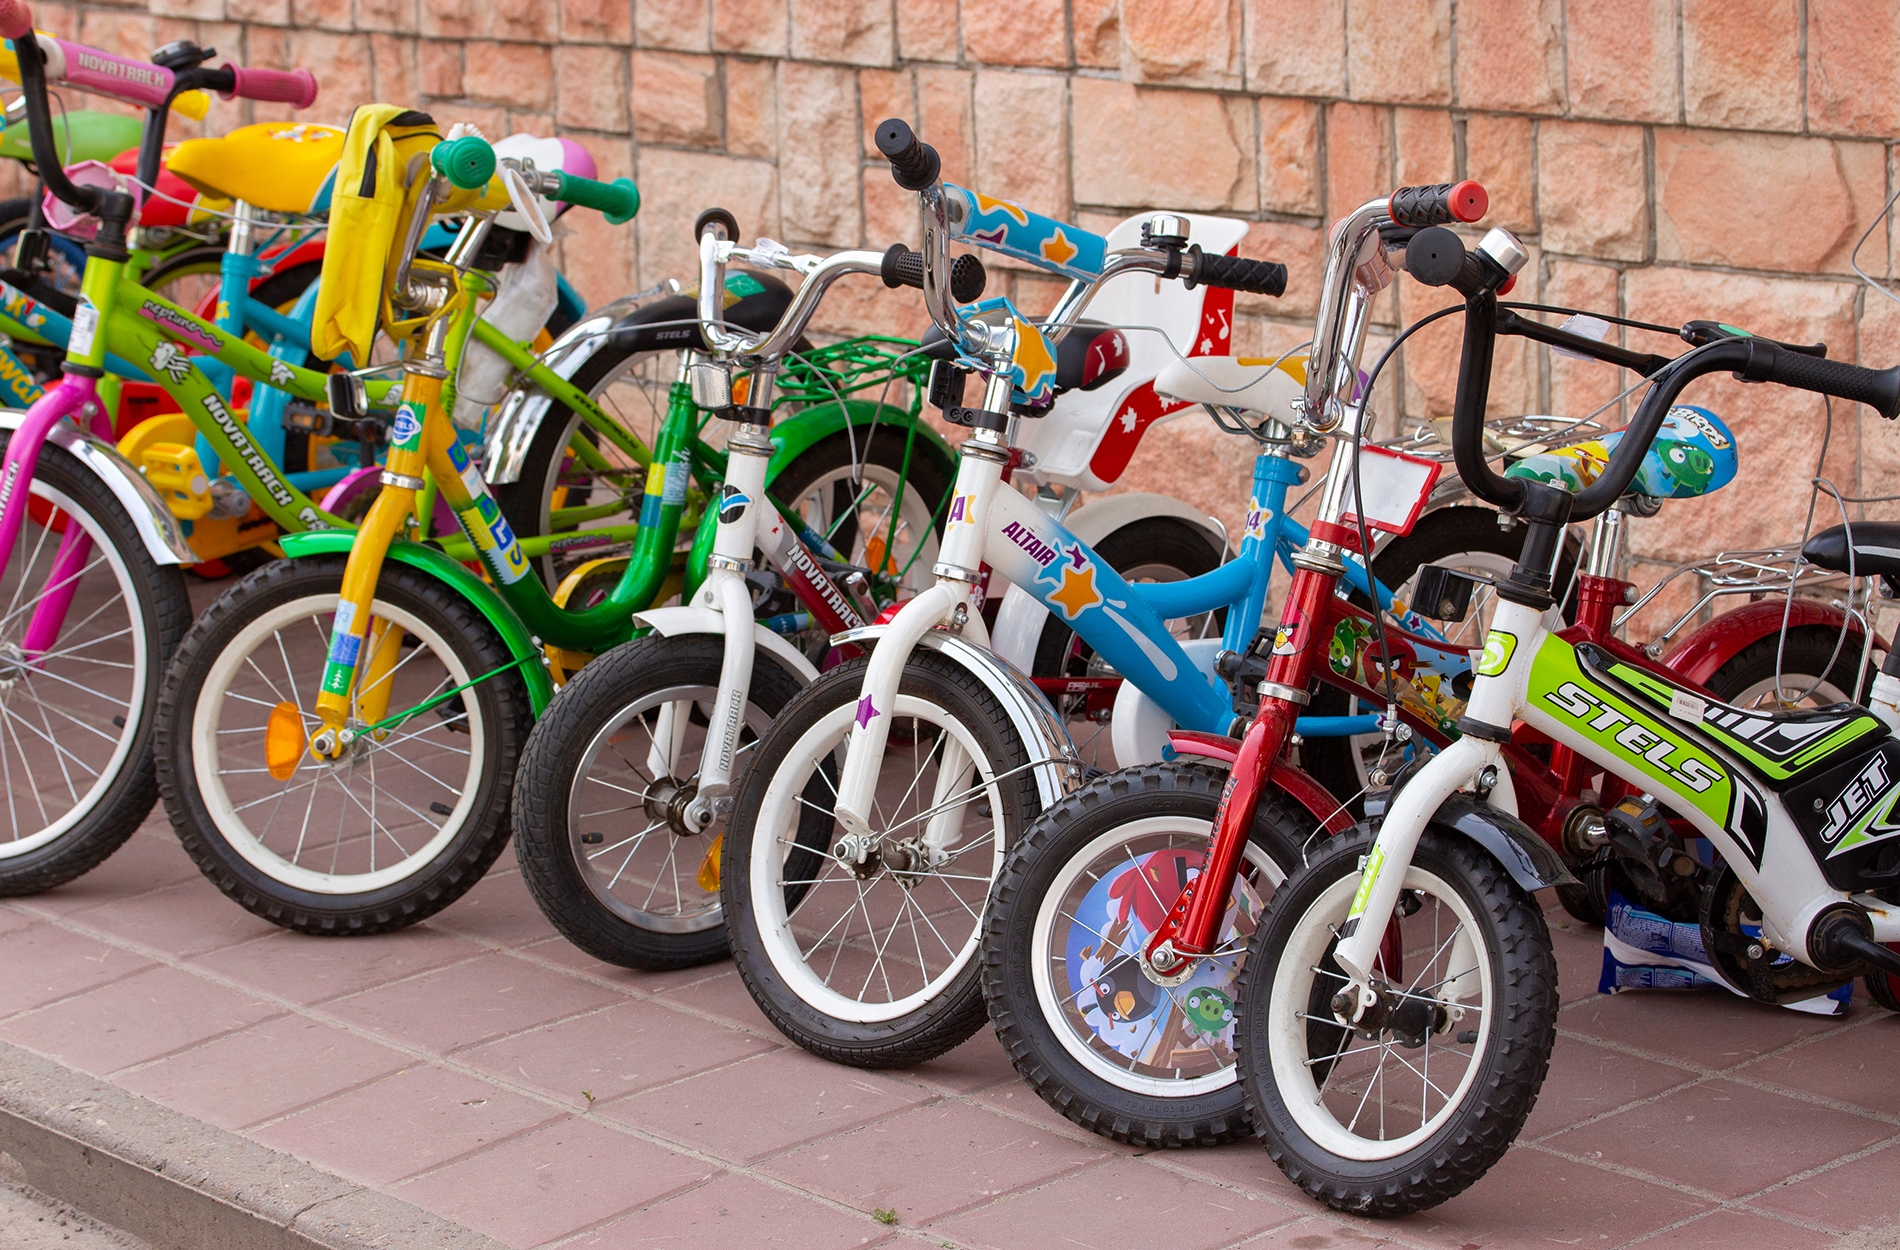 row of children's bicycles